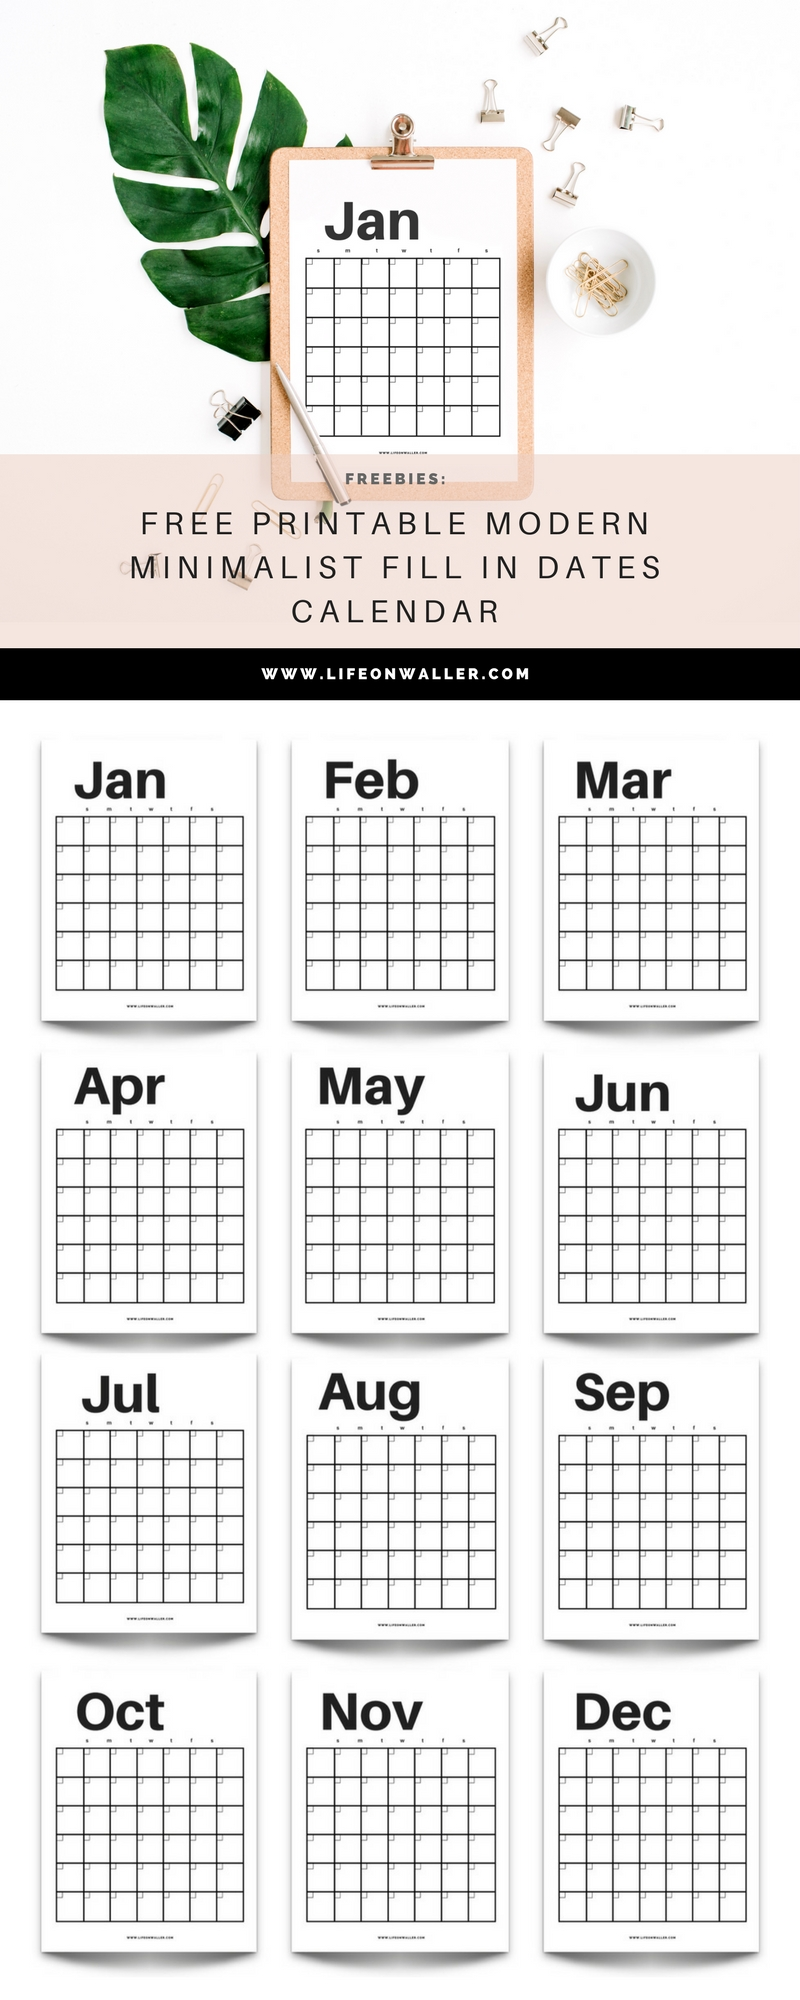 Free Printable Modern Minimalist Fill In Calendar - Use For